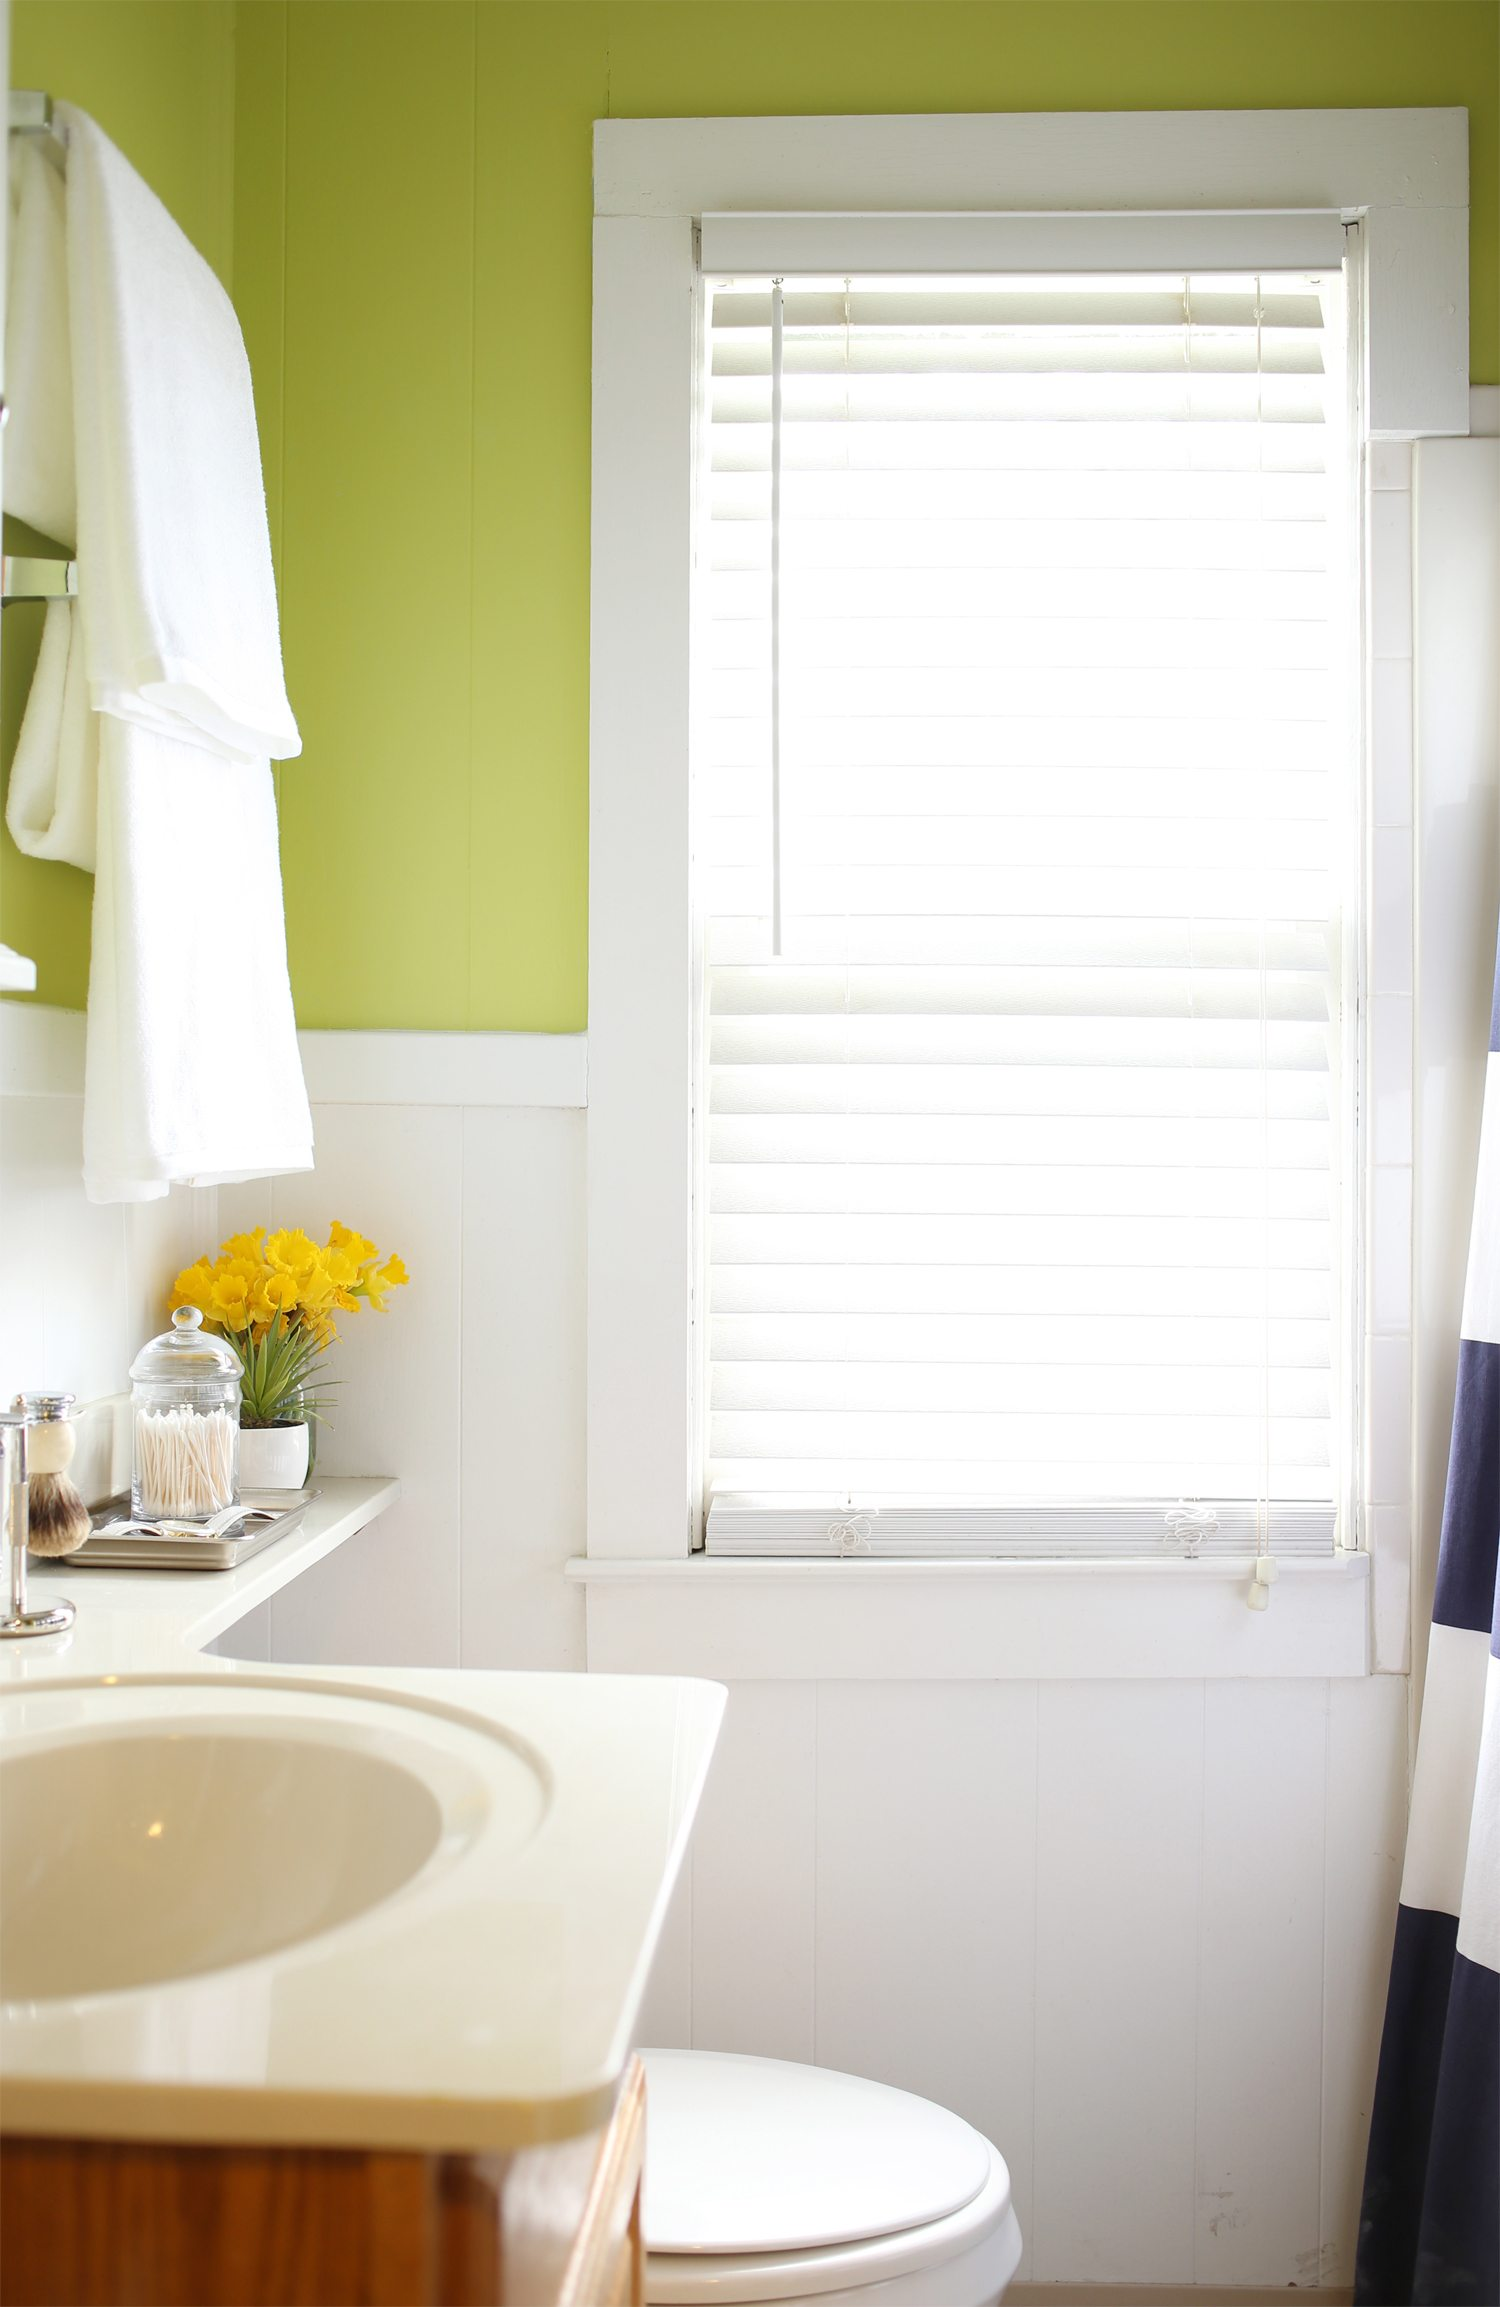 Amazing Mini Bathroom Renovation Bathroom Paint Colors from cydconverse and valsparpaint